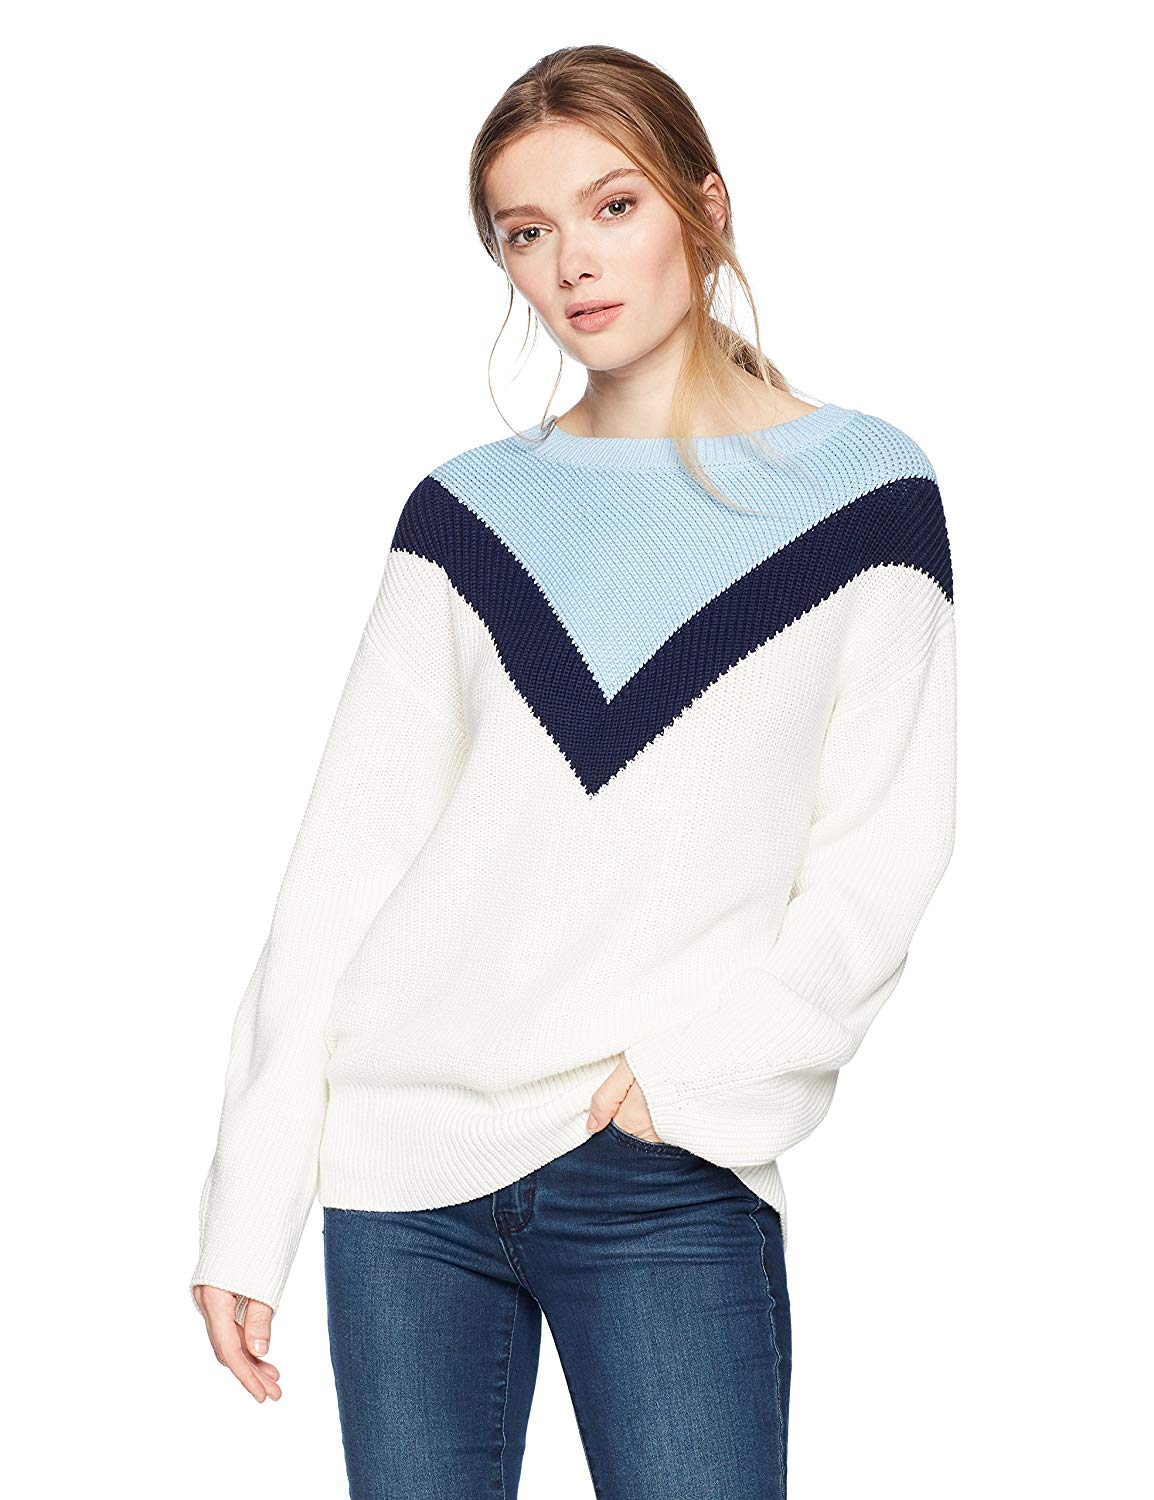 Cable Stitch Women's Geometric Colorblock Sweater